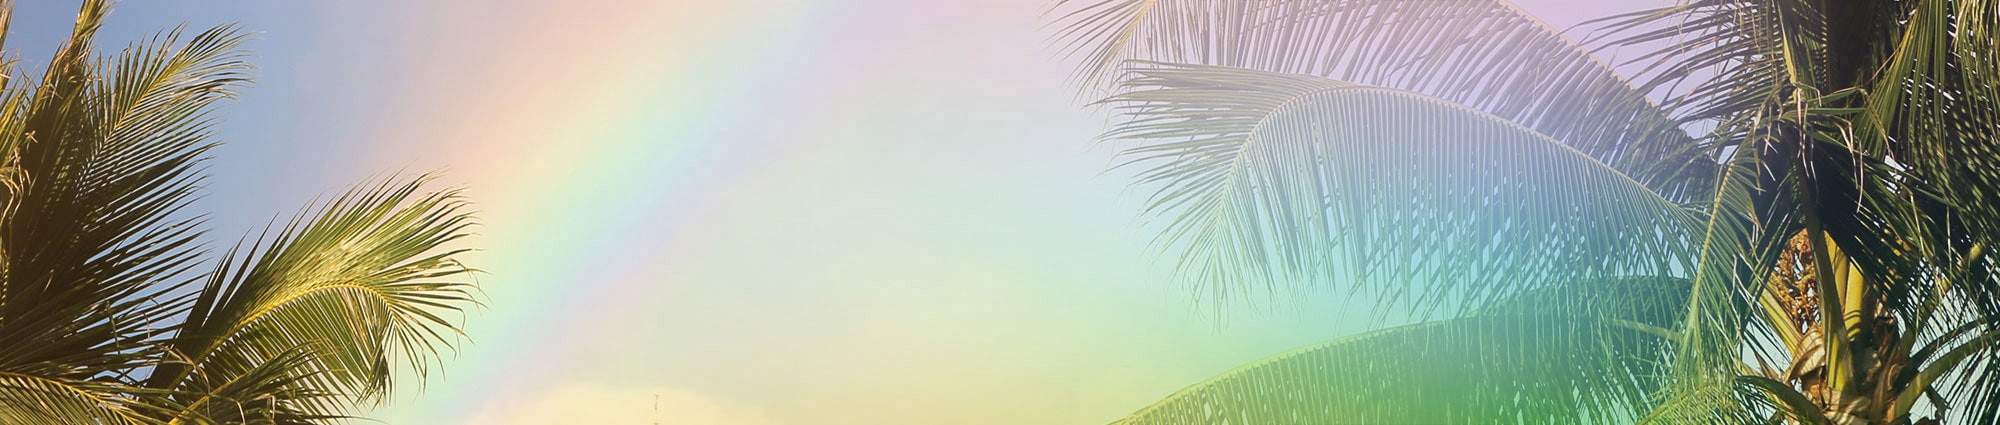 Palm trees framing a rainbow in the sky